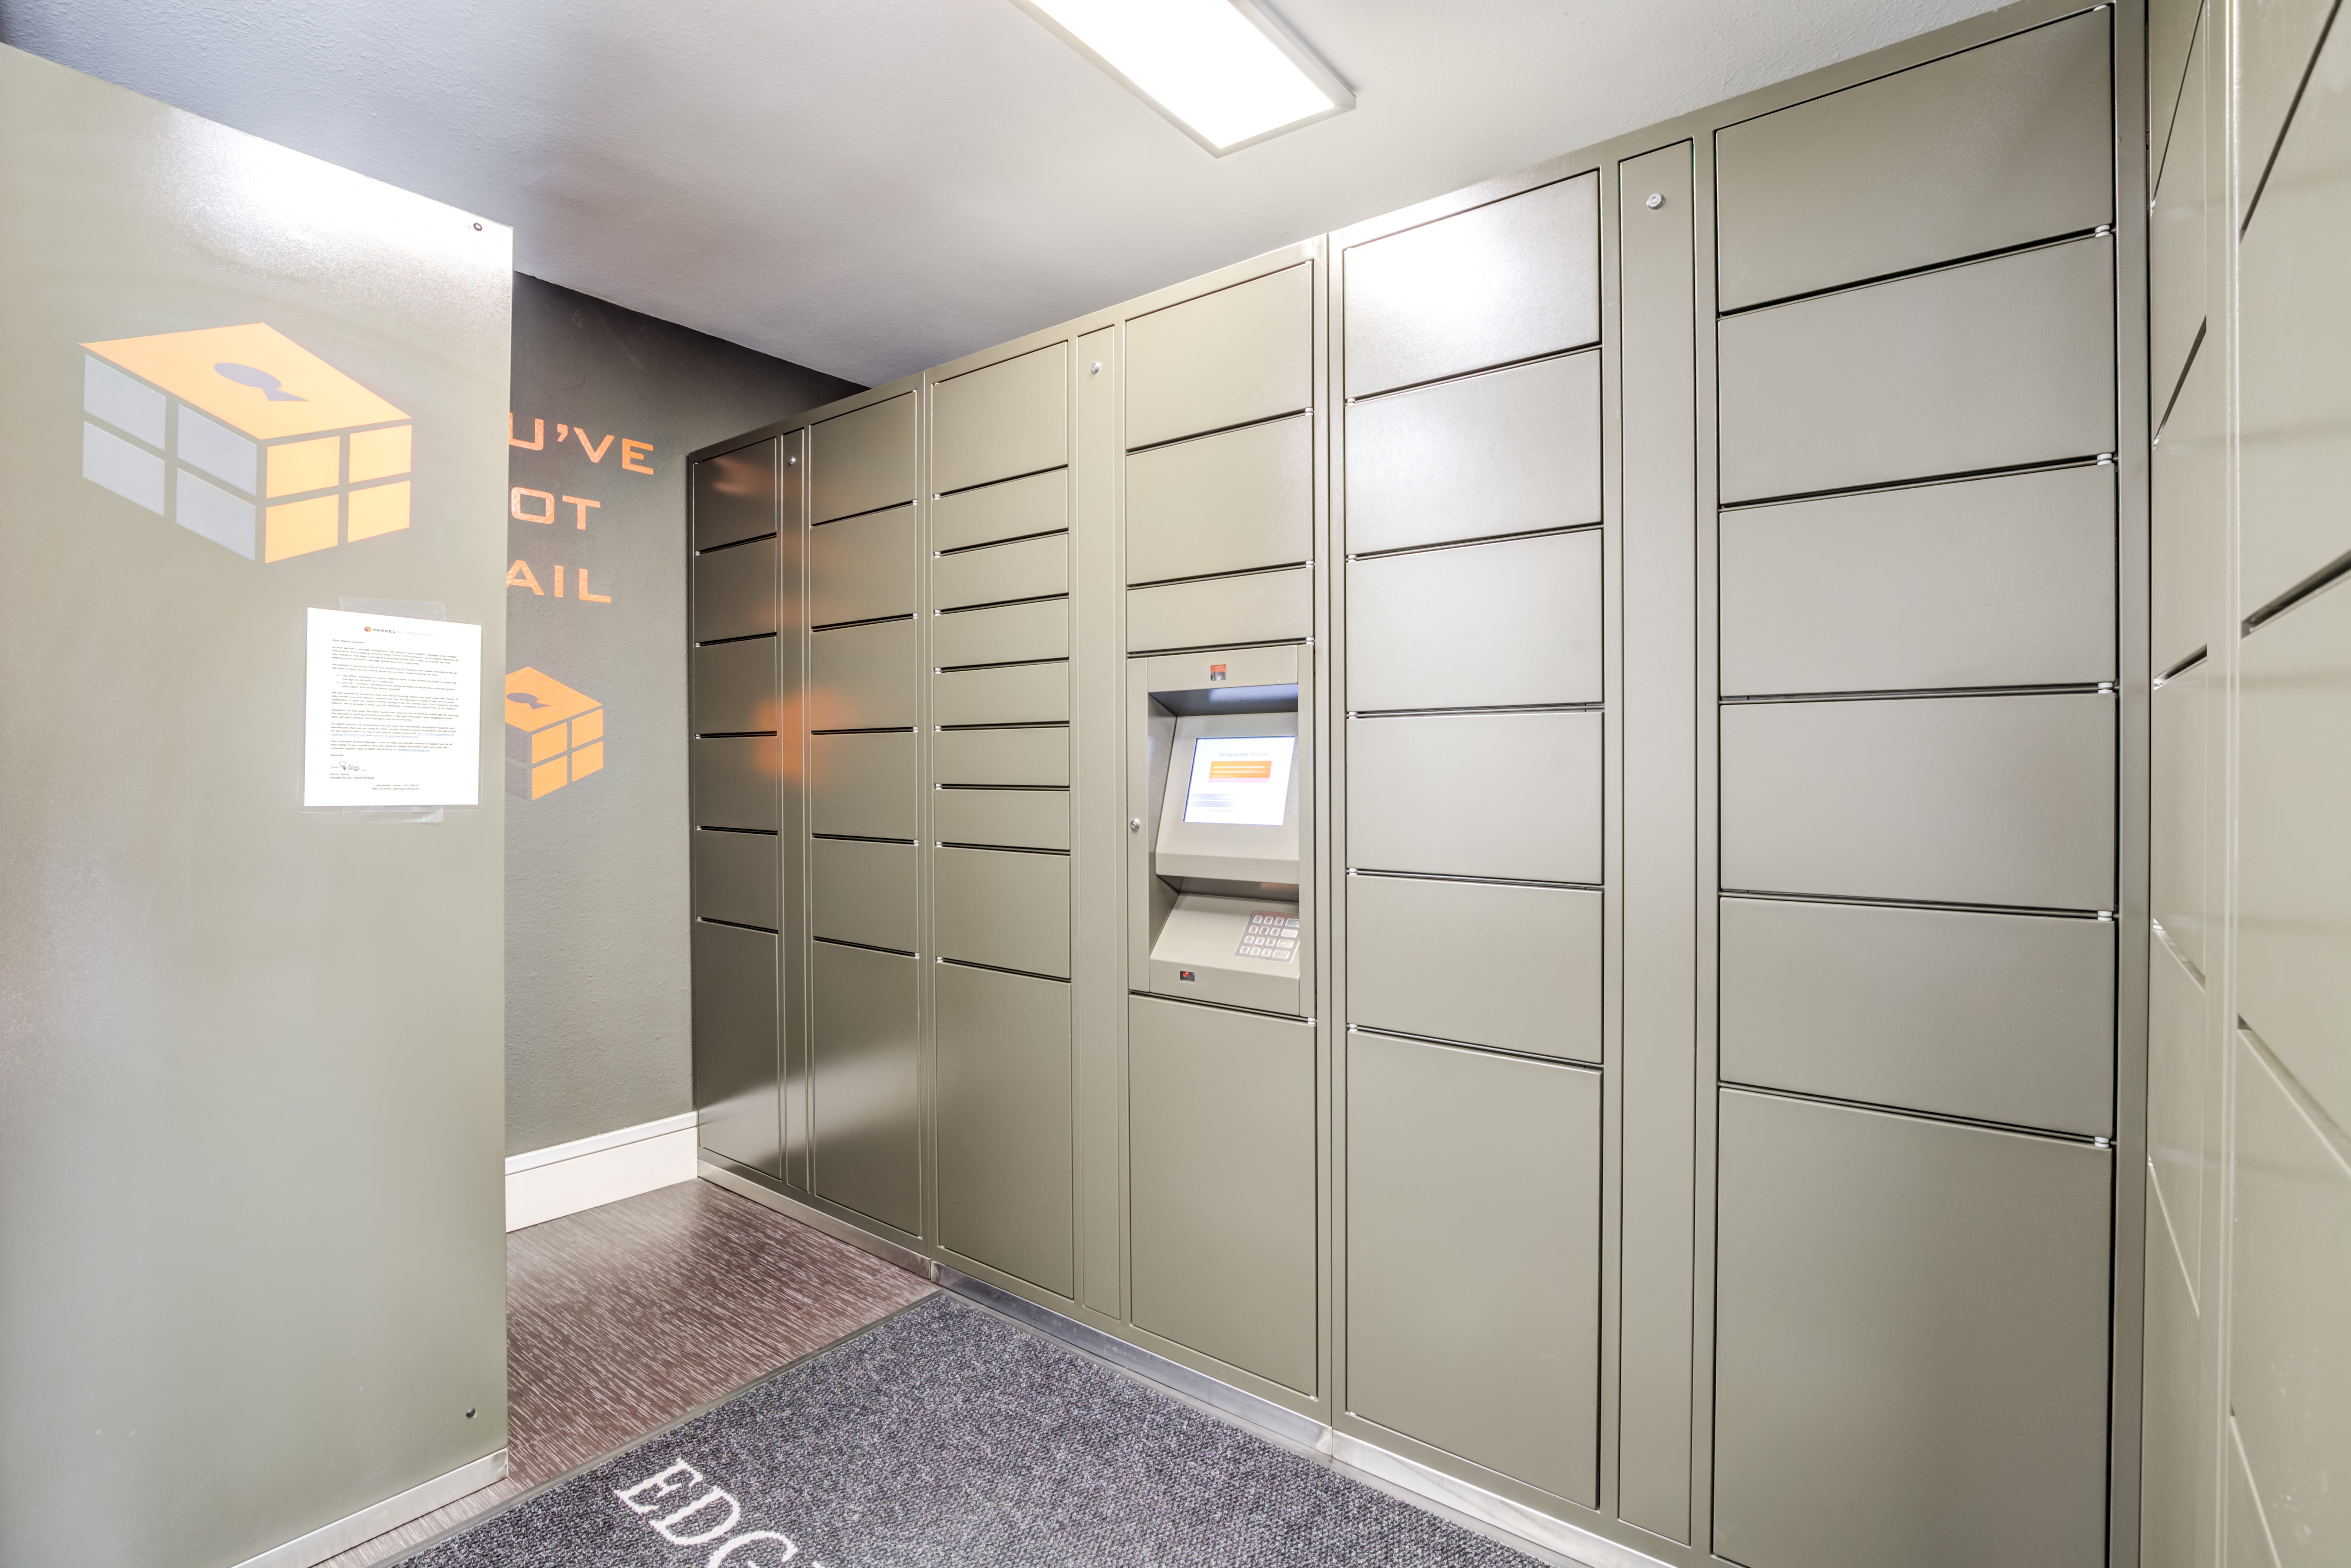 Mail room at Edgewood Park Apartments in Bellevue, Washington